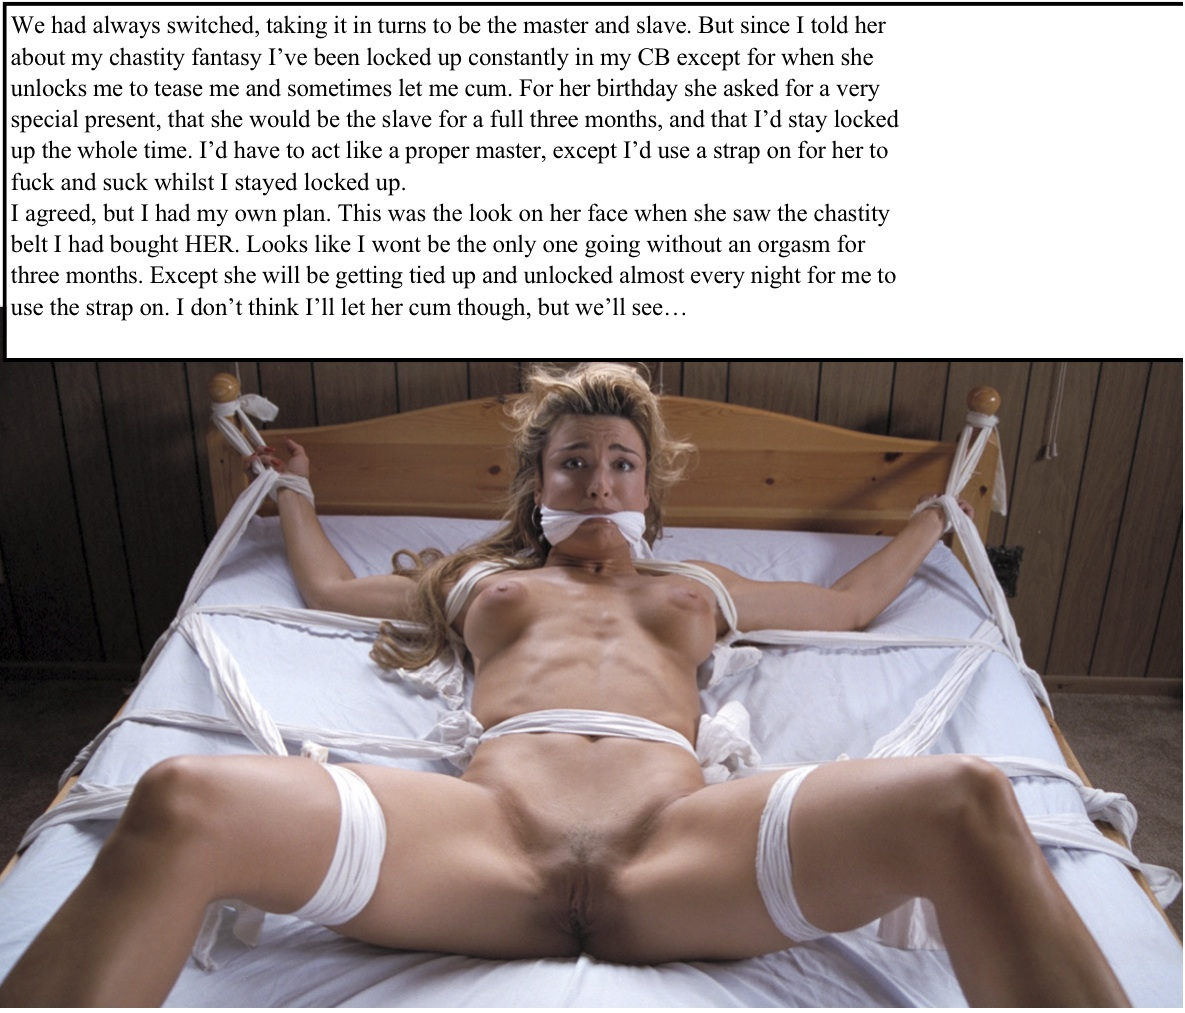 Female chastity bondage caption opinion, you